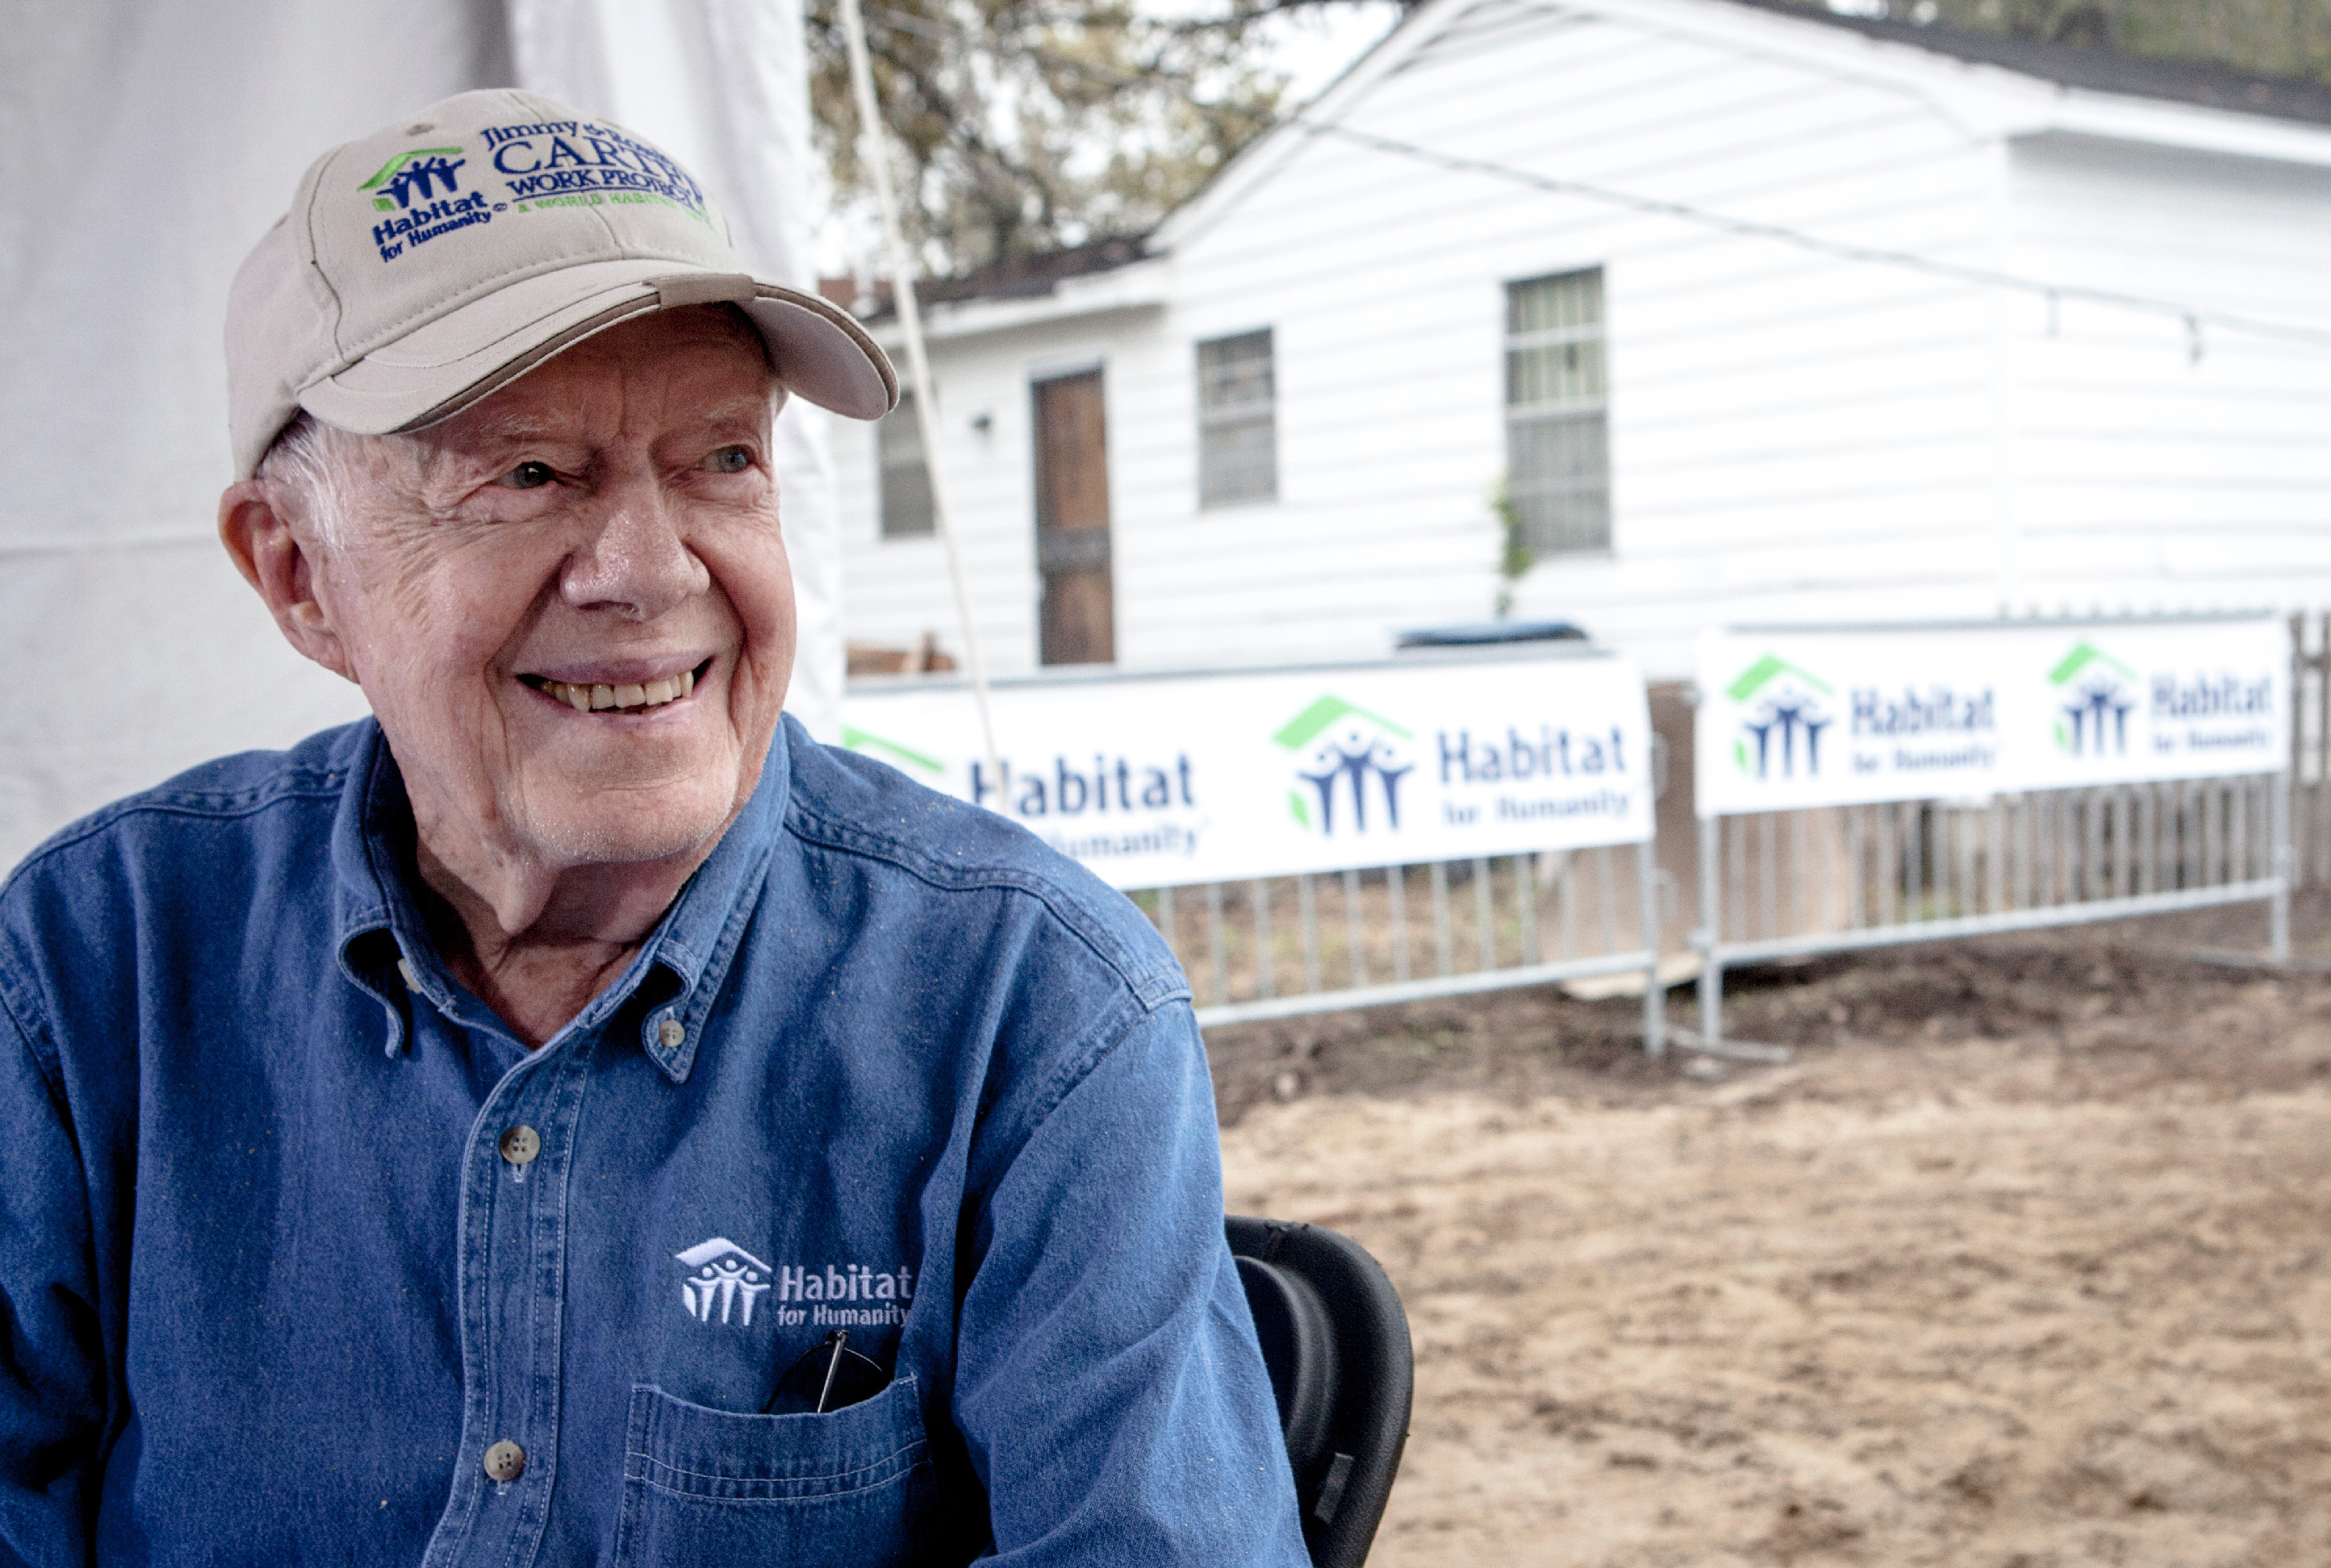 Former President Jimmy Carter at a Habitat for Humanity site in Memphis.